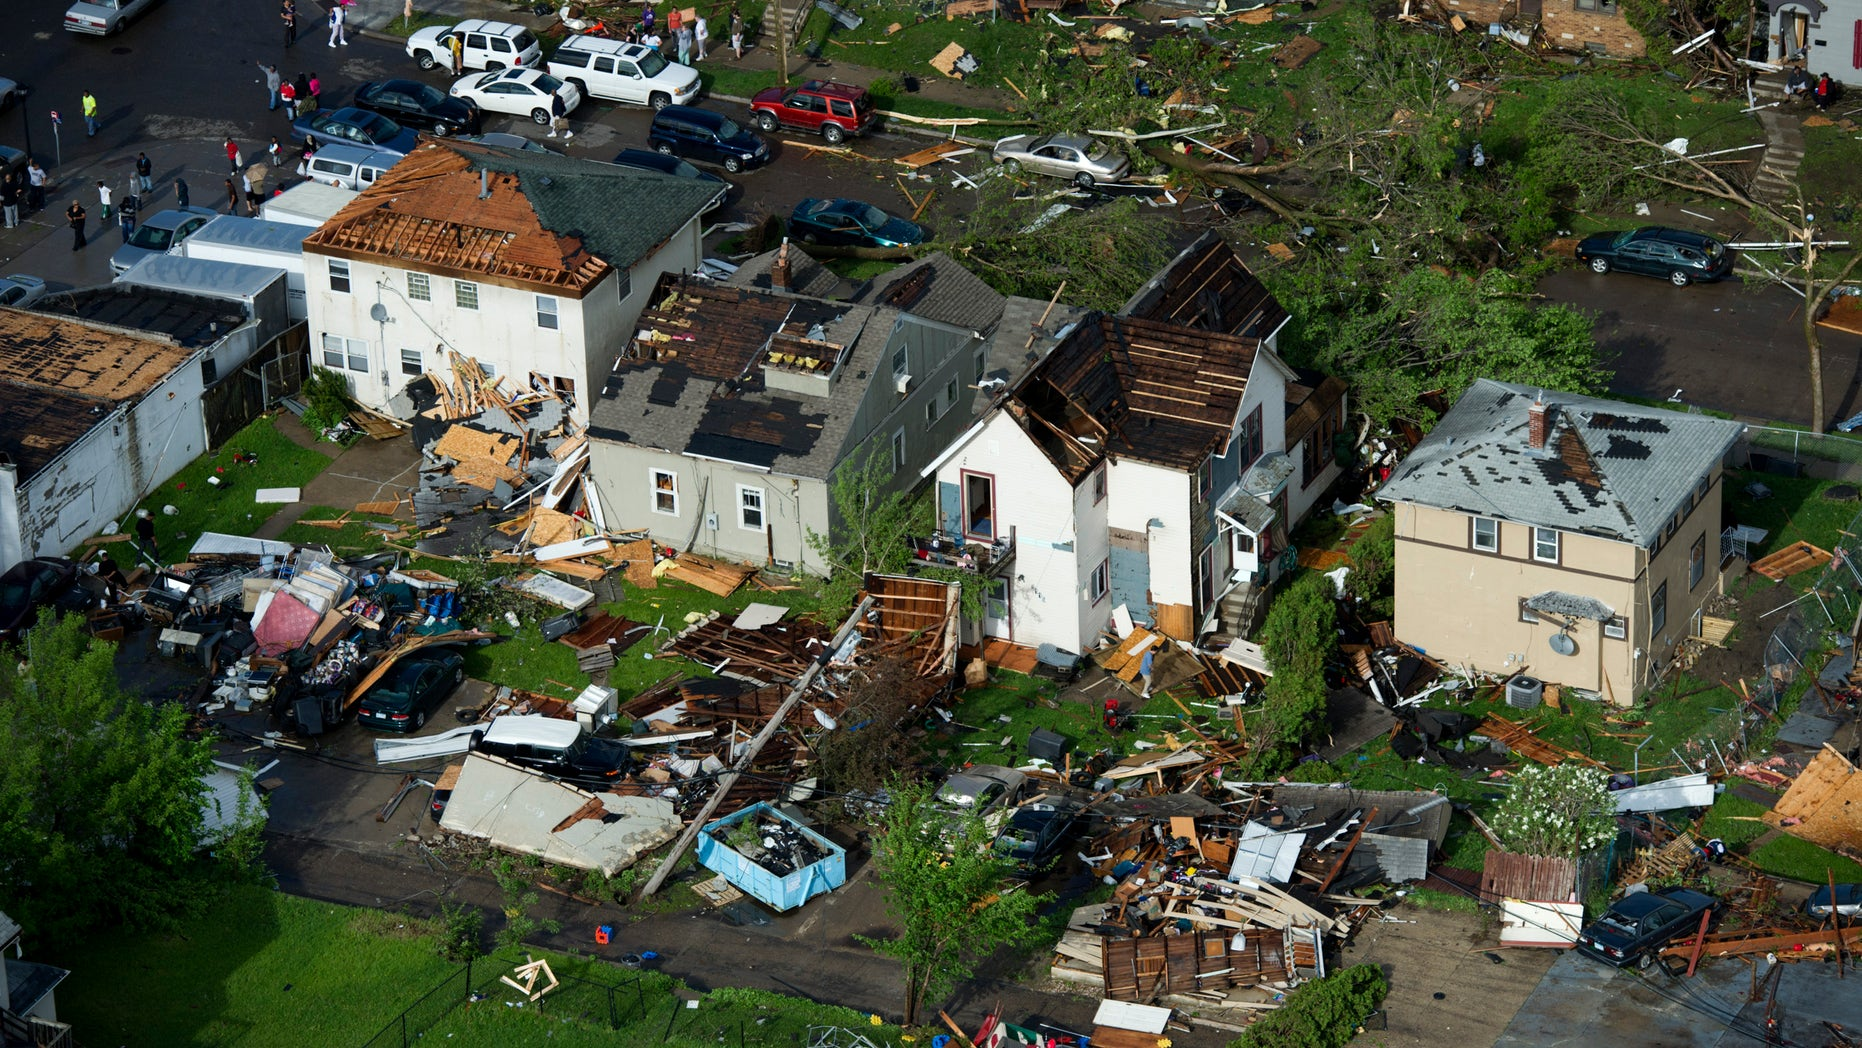 May 22: Damage is shown after a tornado hit northern Minneapolis. At least one tornado hit Minneapolis, damaging scores of homes and toppling hundreds of trees.